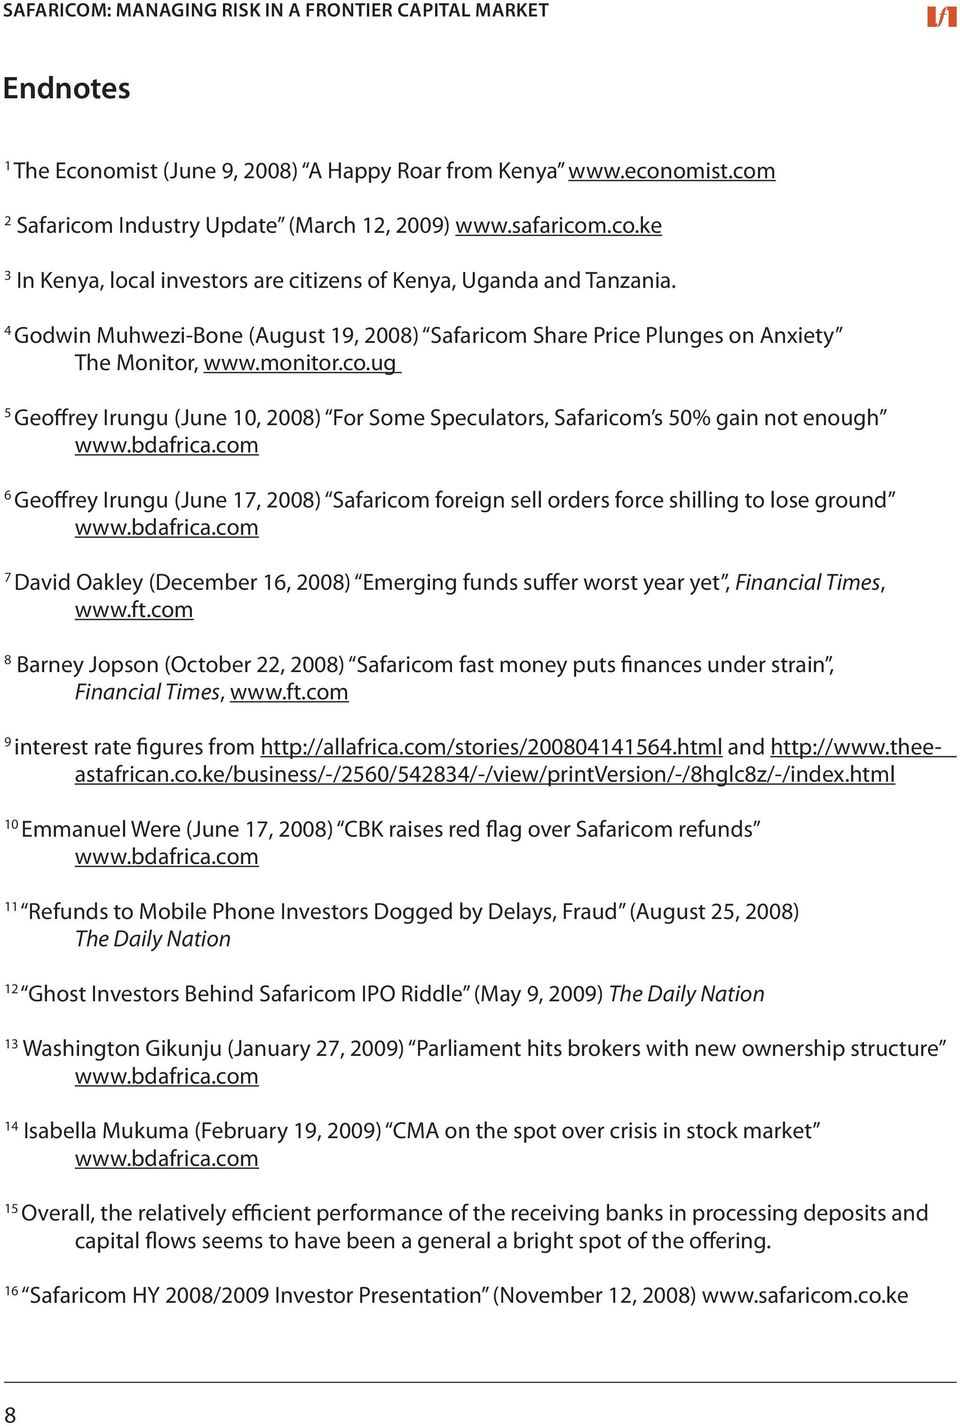 bdafrica.com 6 Geoffrey Irungu (June 17, 2008) Safaricom foreign sell orders force shilling to lose ground www.bdafrica.com 7 David Oakley (December 16, 2008) Emerging funds suffer worst year yet, Financial Times, www.